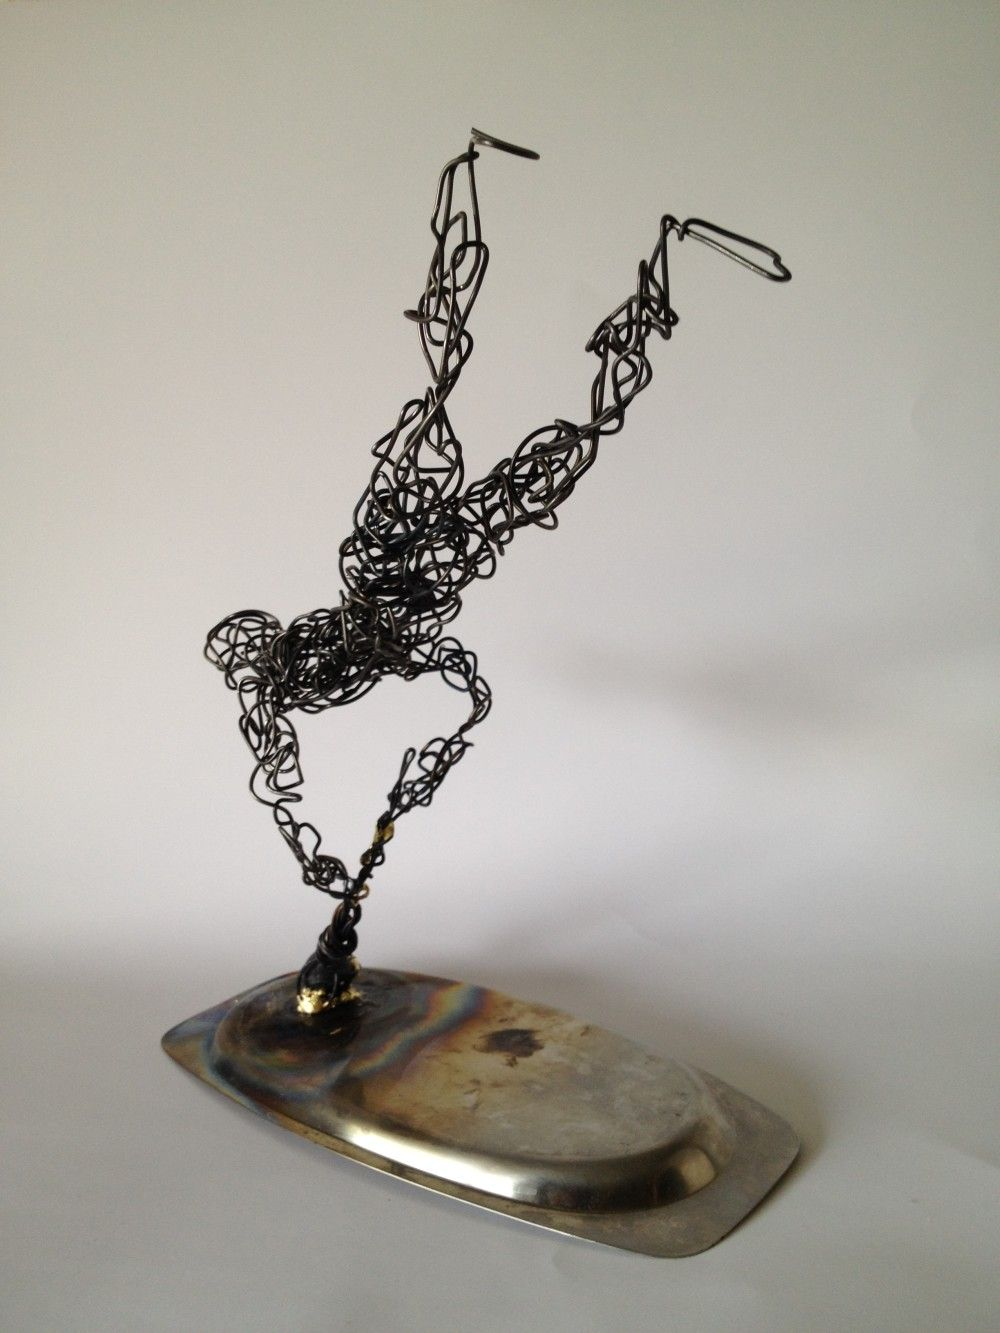 p>Back view wire sculpture Blown away</p><div class=\